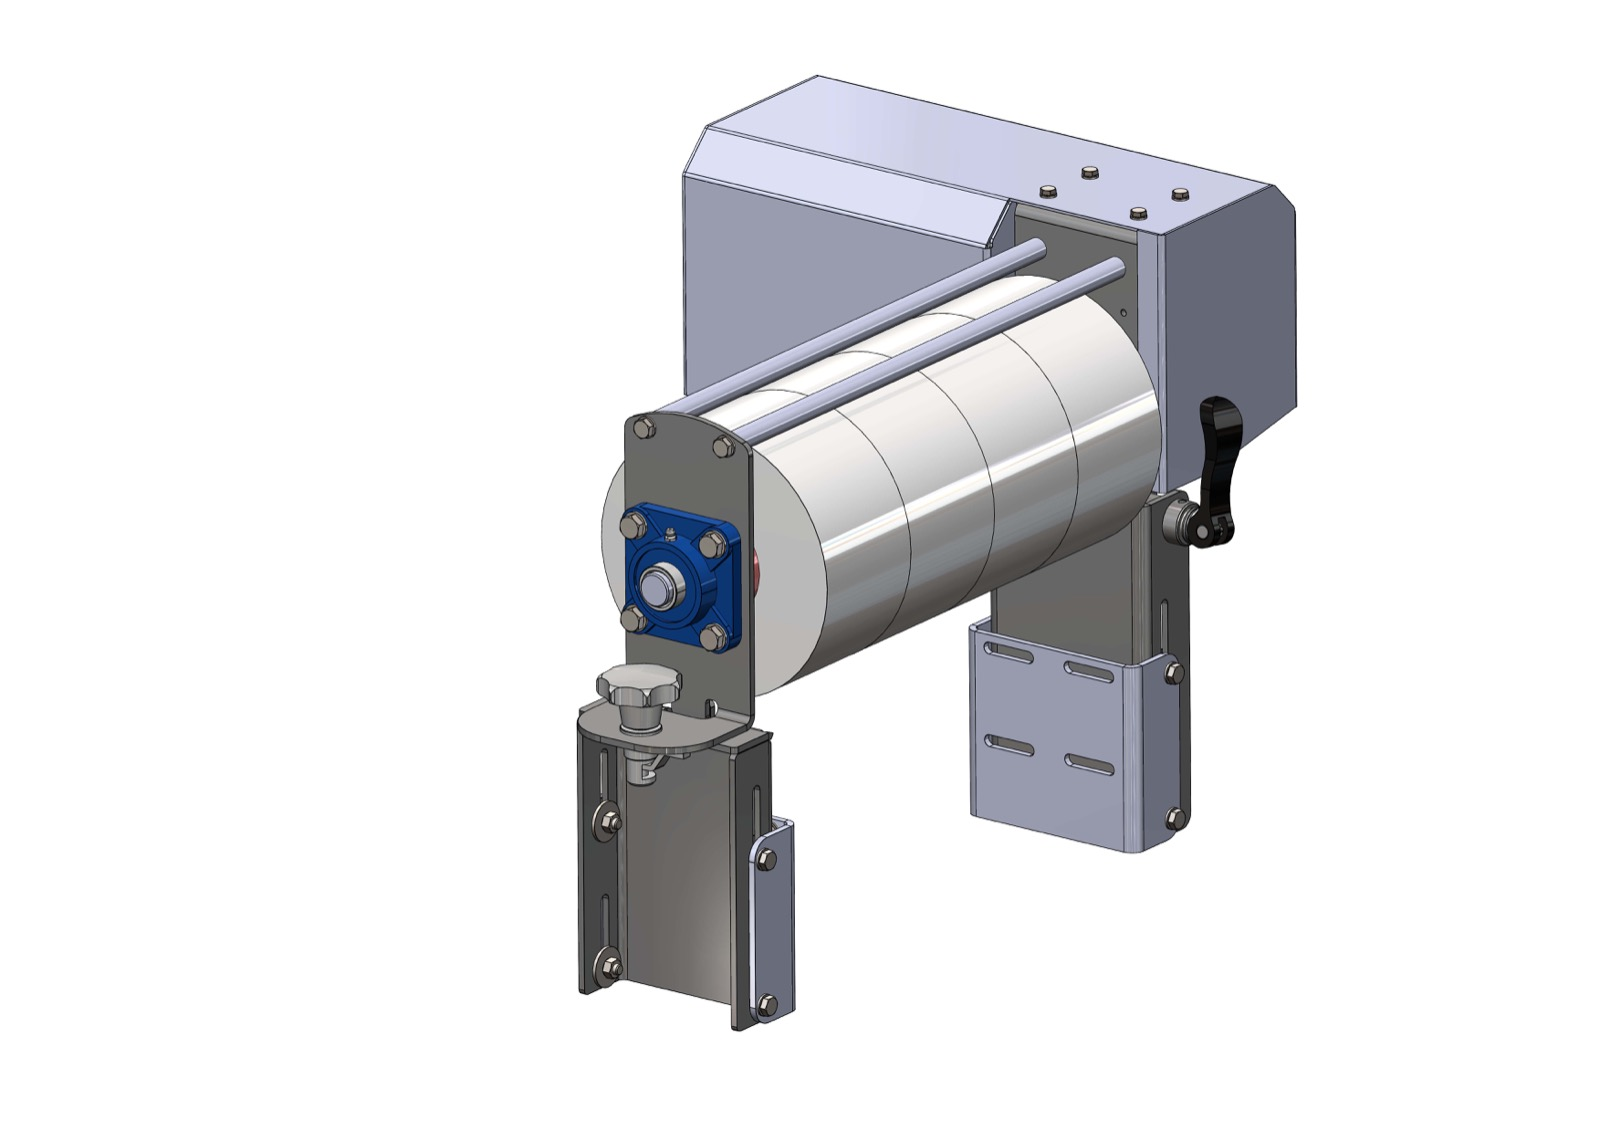 https://www.industrialproductsolutions.nl/wp-content/uploads/2021/05/WhatsApp-Image-2021-05-27-at-14.17.25-13.jpeg